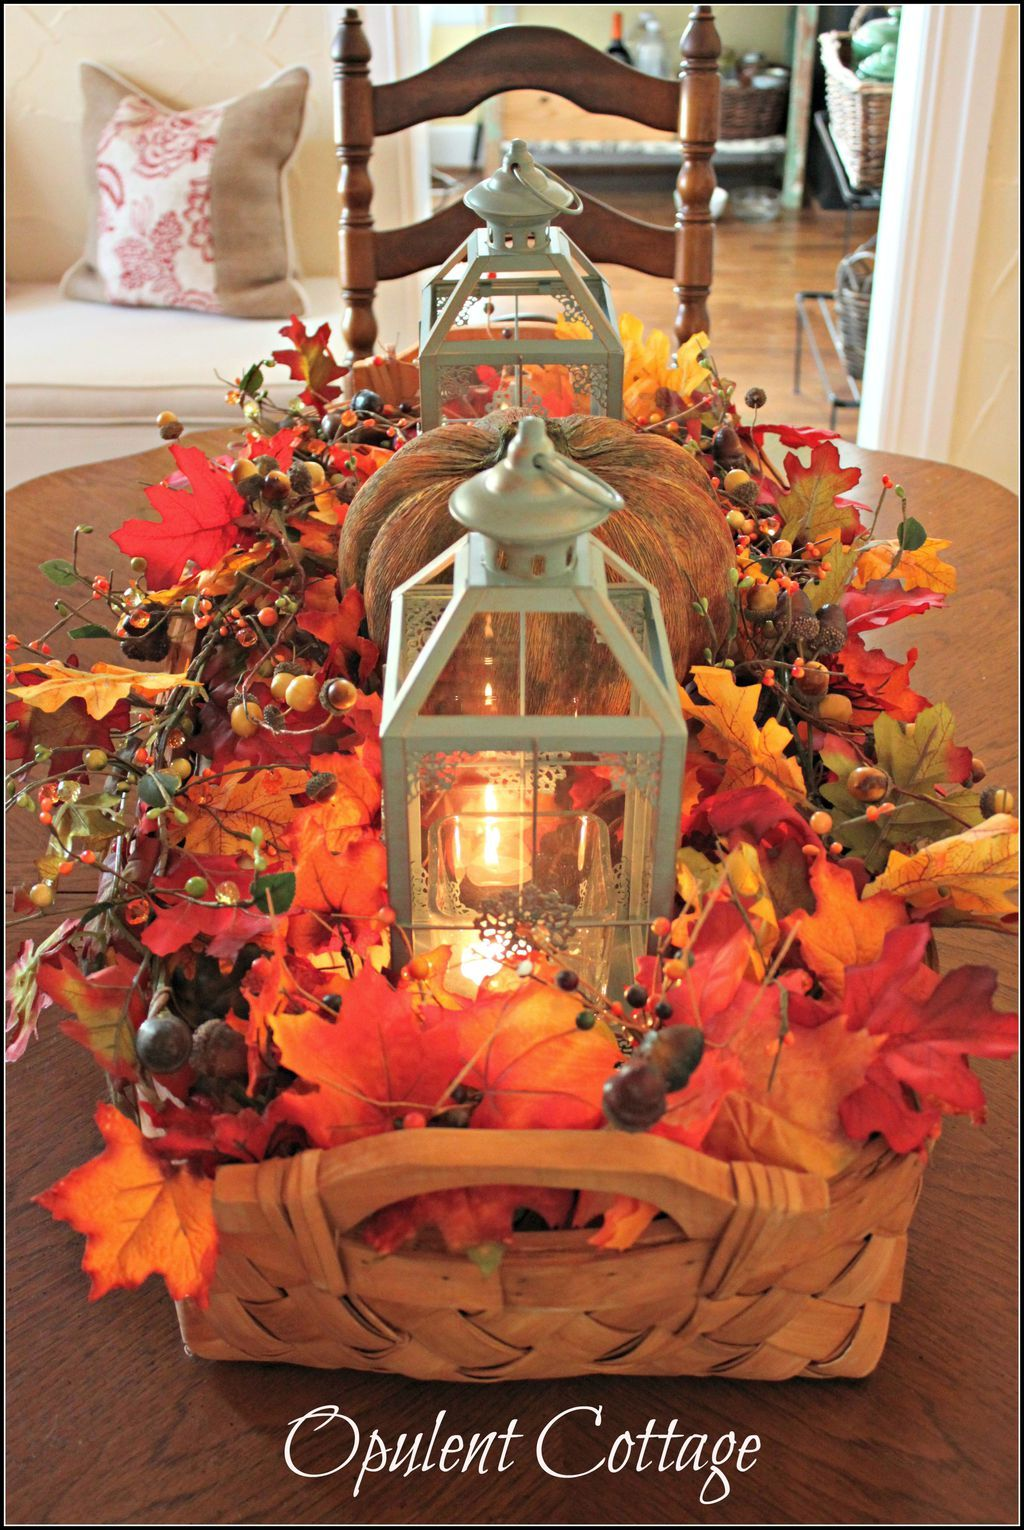 The Most Stunning Fall Flower Arrangements And Centerpieces Fall Centerpiece Fall Decor Thanksgiving Table Decorations